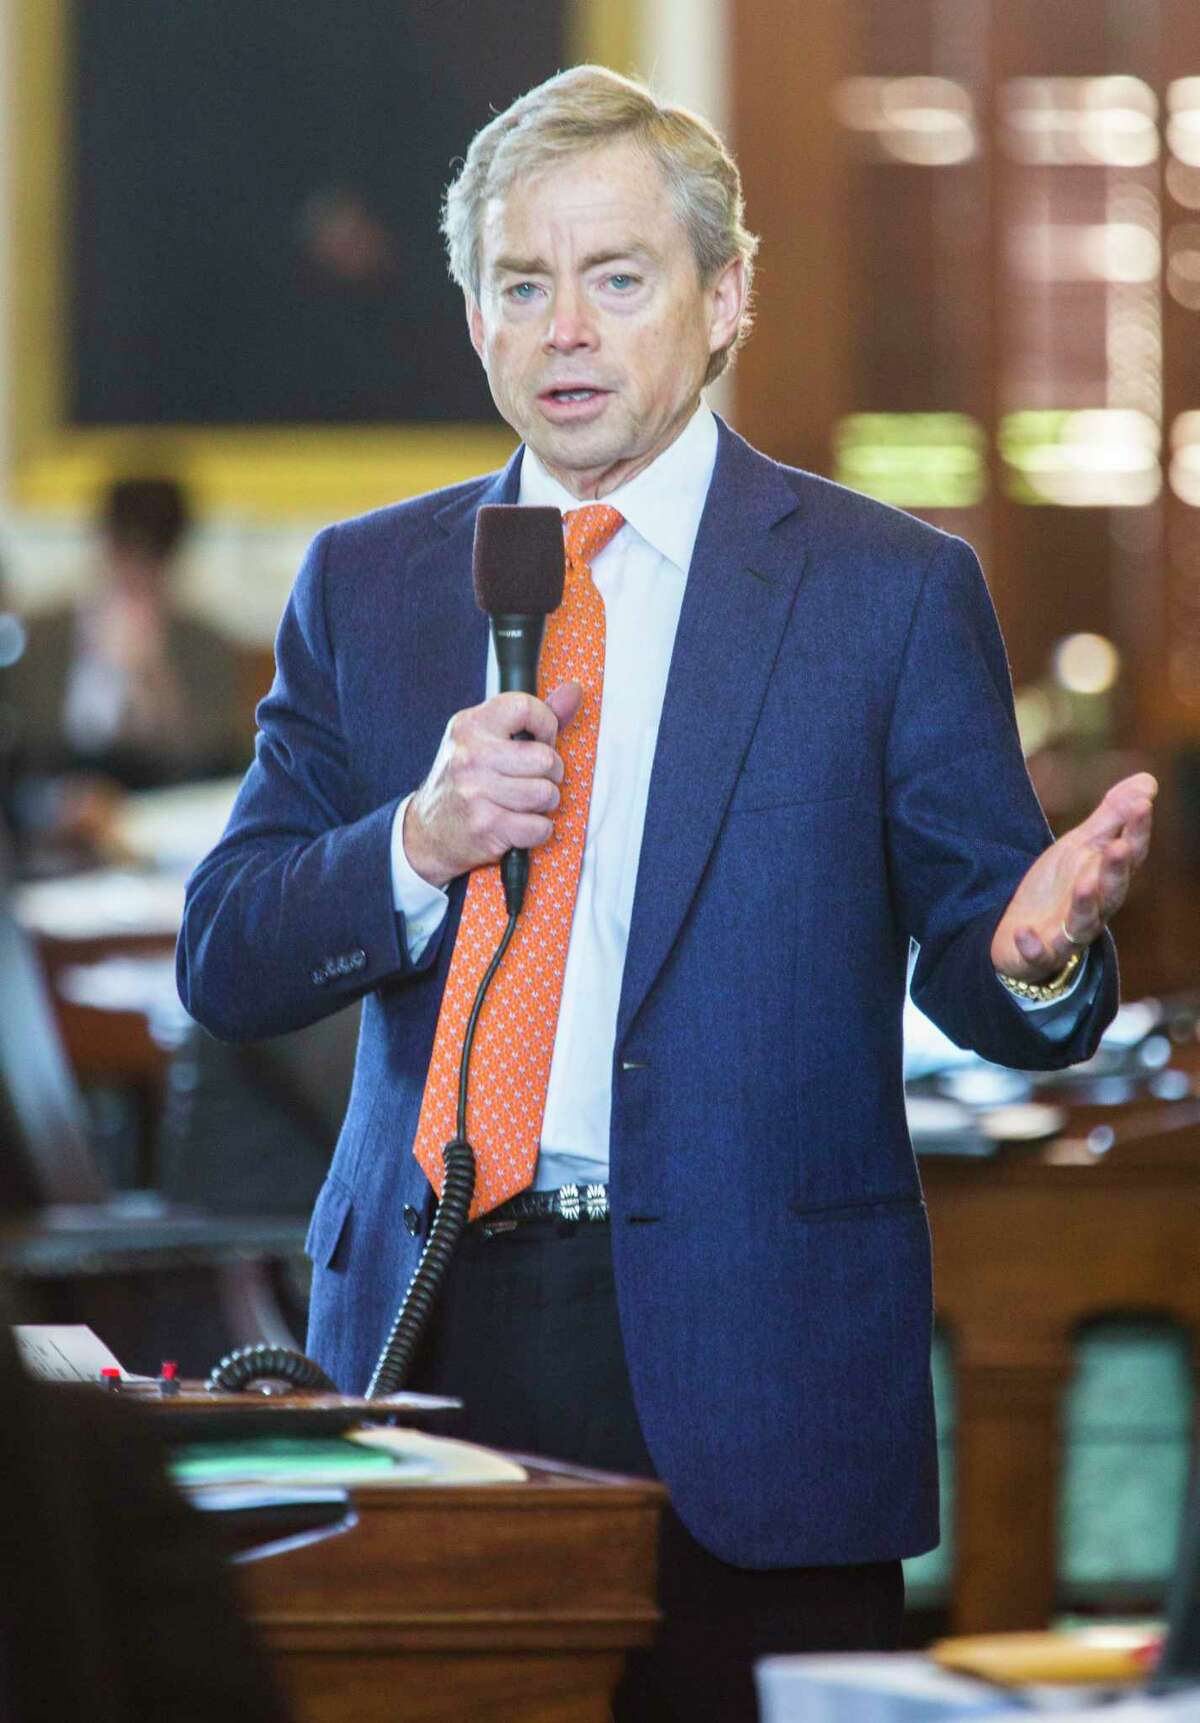 Sen. Don Huffines (R-Dallas) speaks about open carry legislation during the final days of the 84th Texas legislature regular session on Friday, May 29, 2015 at the Texas state capitol in Austin, Texas. (Ashley Landis/The Dallas Morning News/TNS)